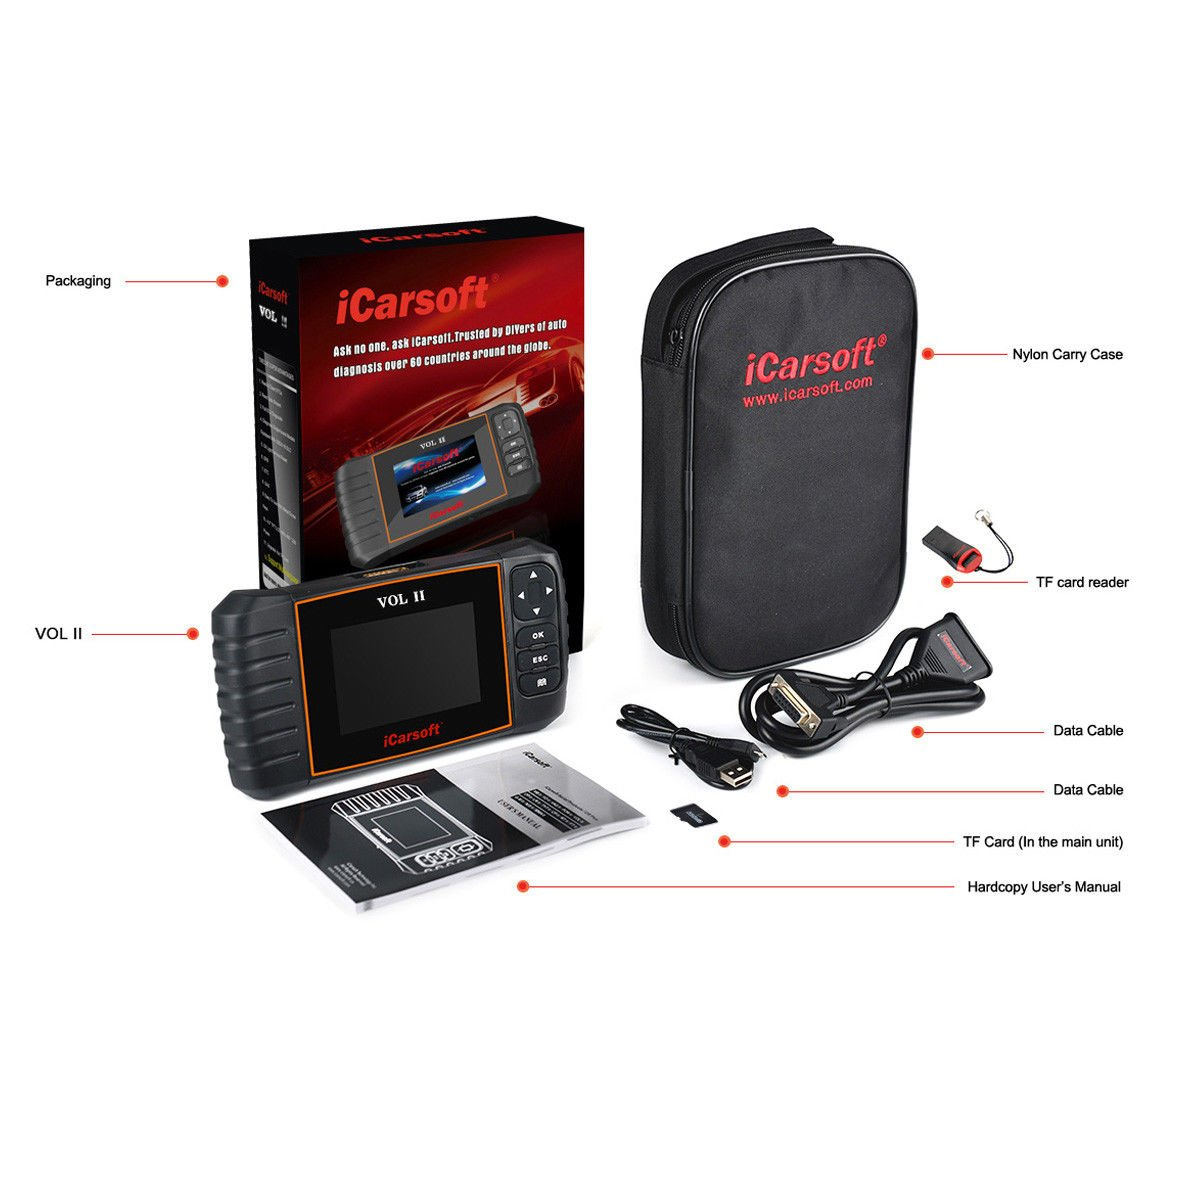 iCarsoft VOL II OBDII diagnostic tool for Volvo Saab multi systems, SRS ABS Engine oil reset, EPB by iCarsoft (Image #8)